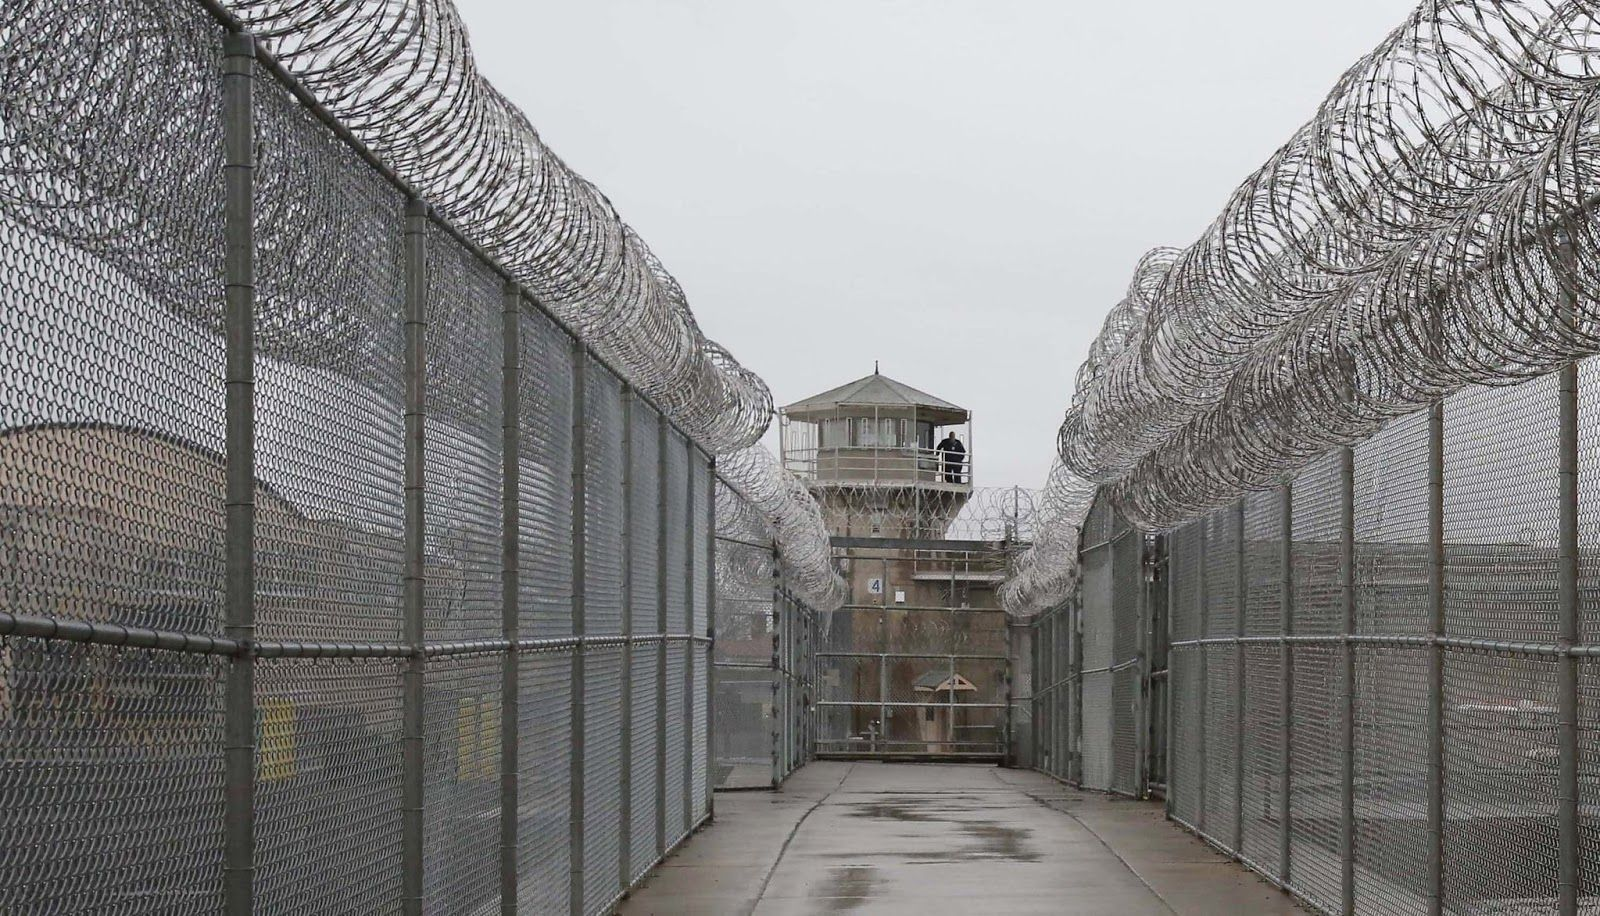 A colored photograph of Washington State Penitentiary's watch tower from the outside, as seen down a concrete corridor. High fences topped with barbed wire line each side of the corridor.